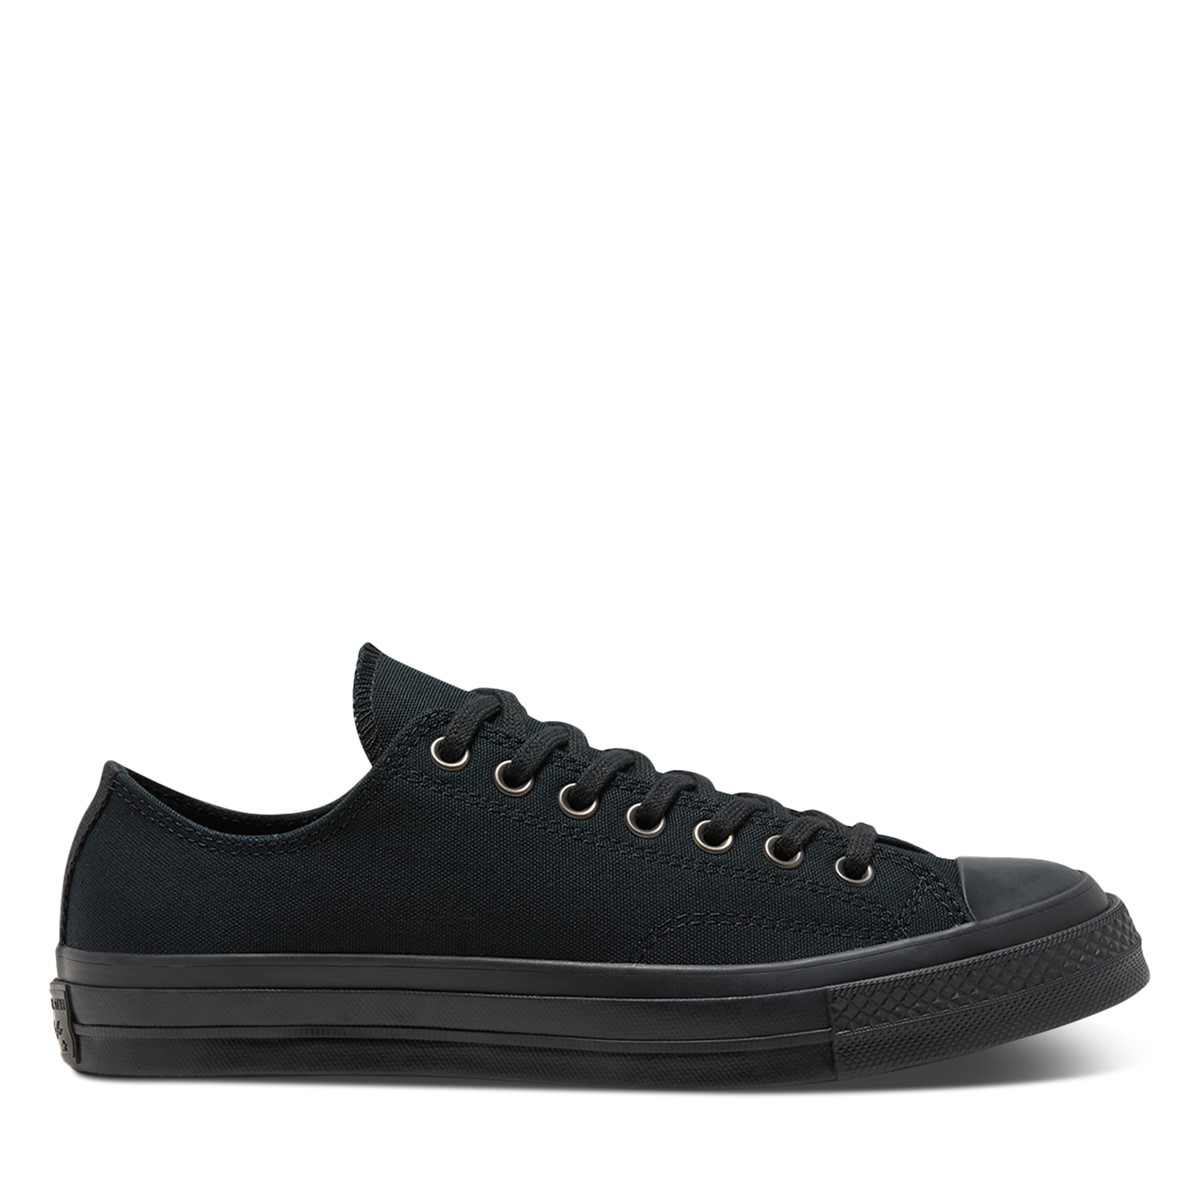 Chuck 70 Ox Sneakers in Black